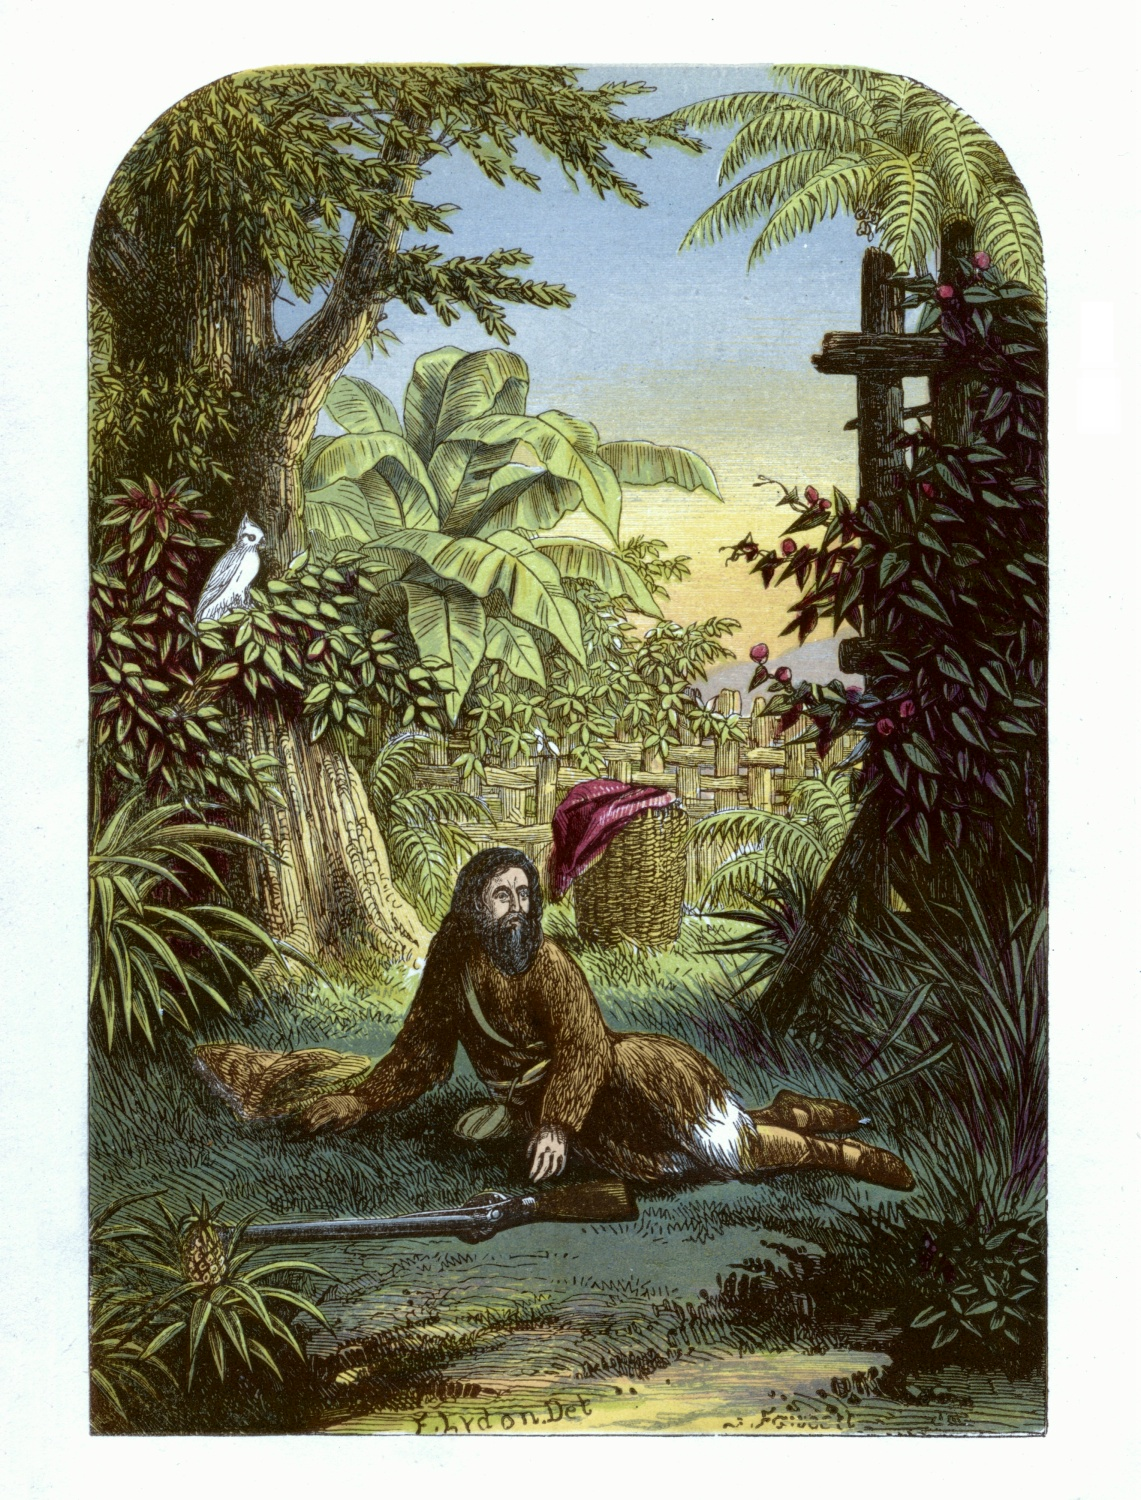 Robinson Crusoe awakened from sleep by his parrot